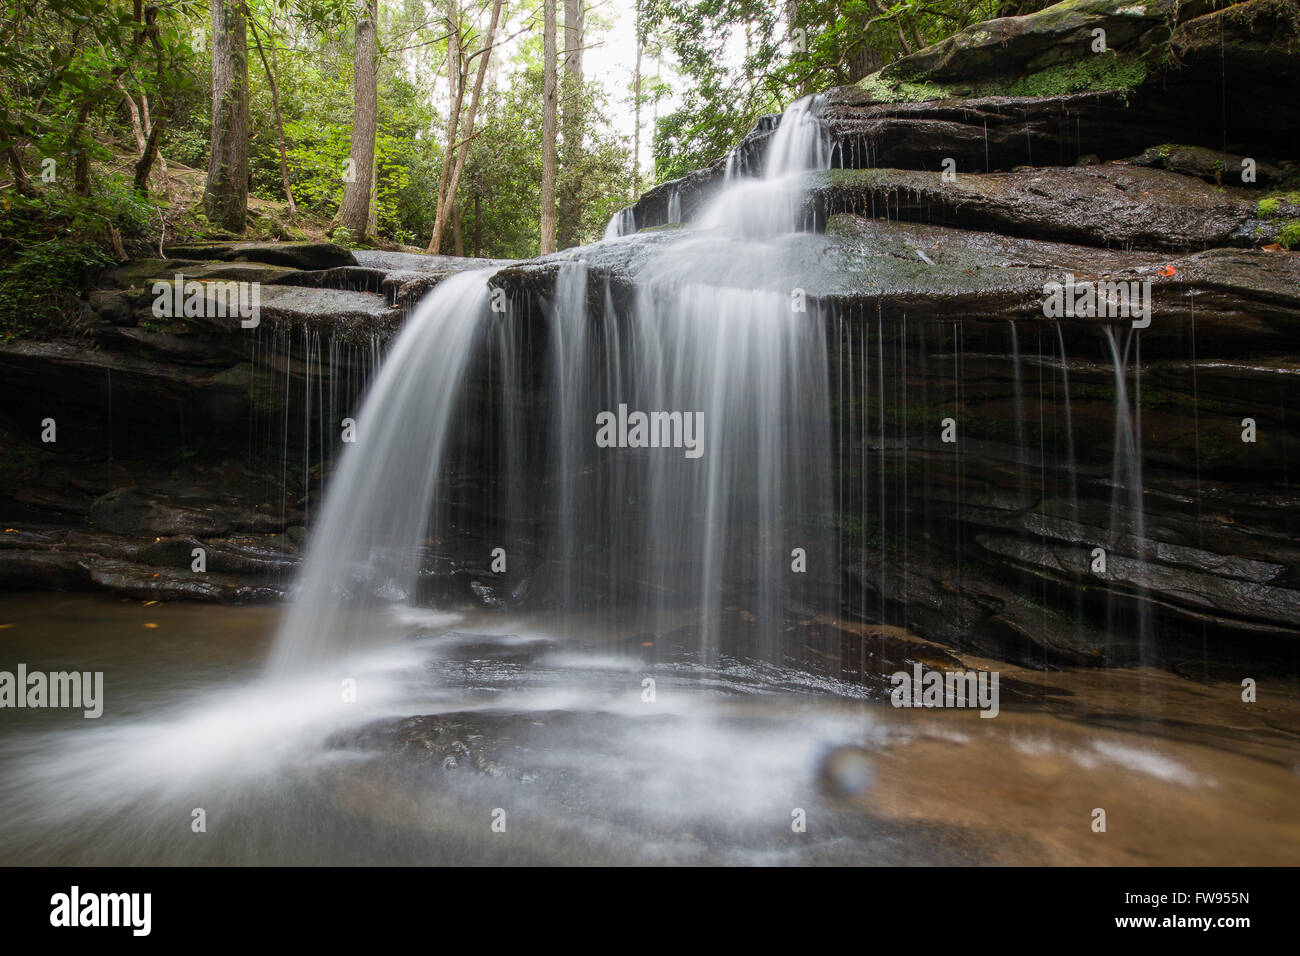 Carrick Creek Waterfall at the beginning of the hike to the top of Table Rock State Park in South Carolina. - Stock Image